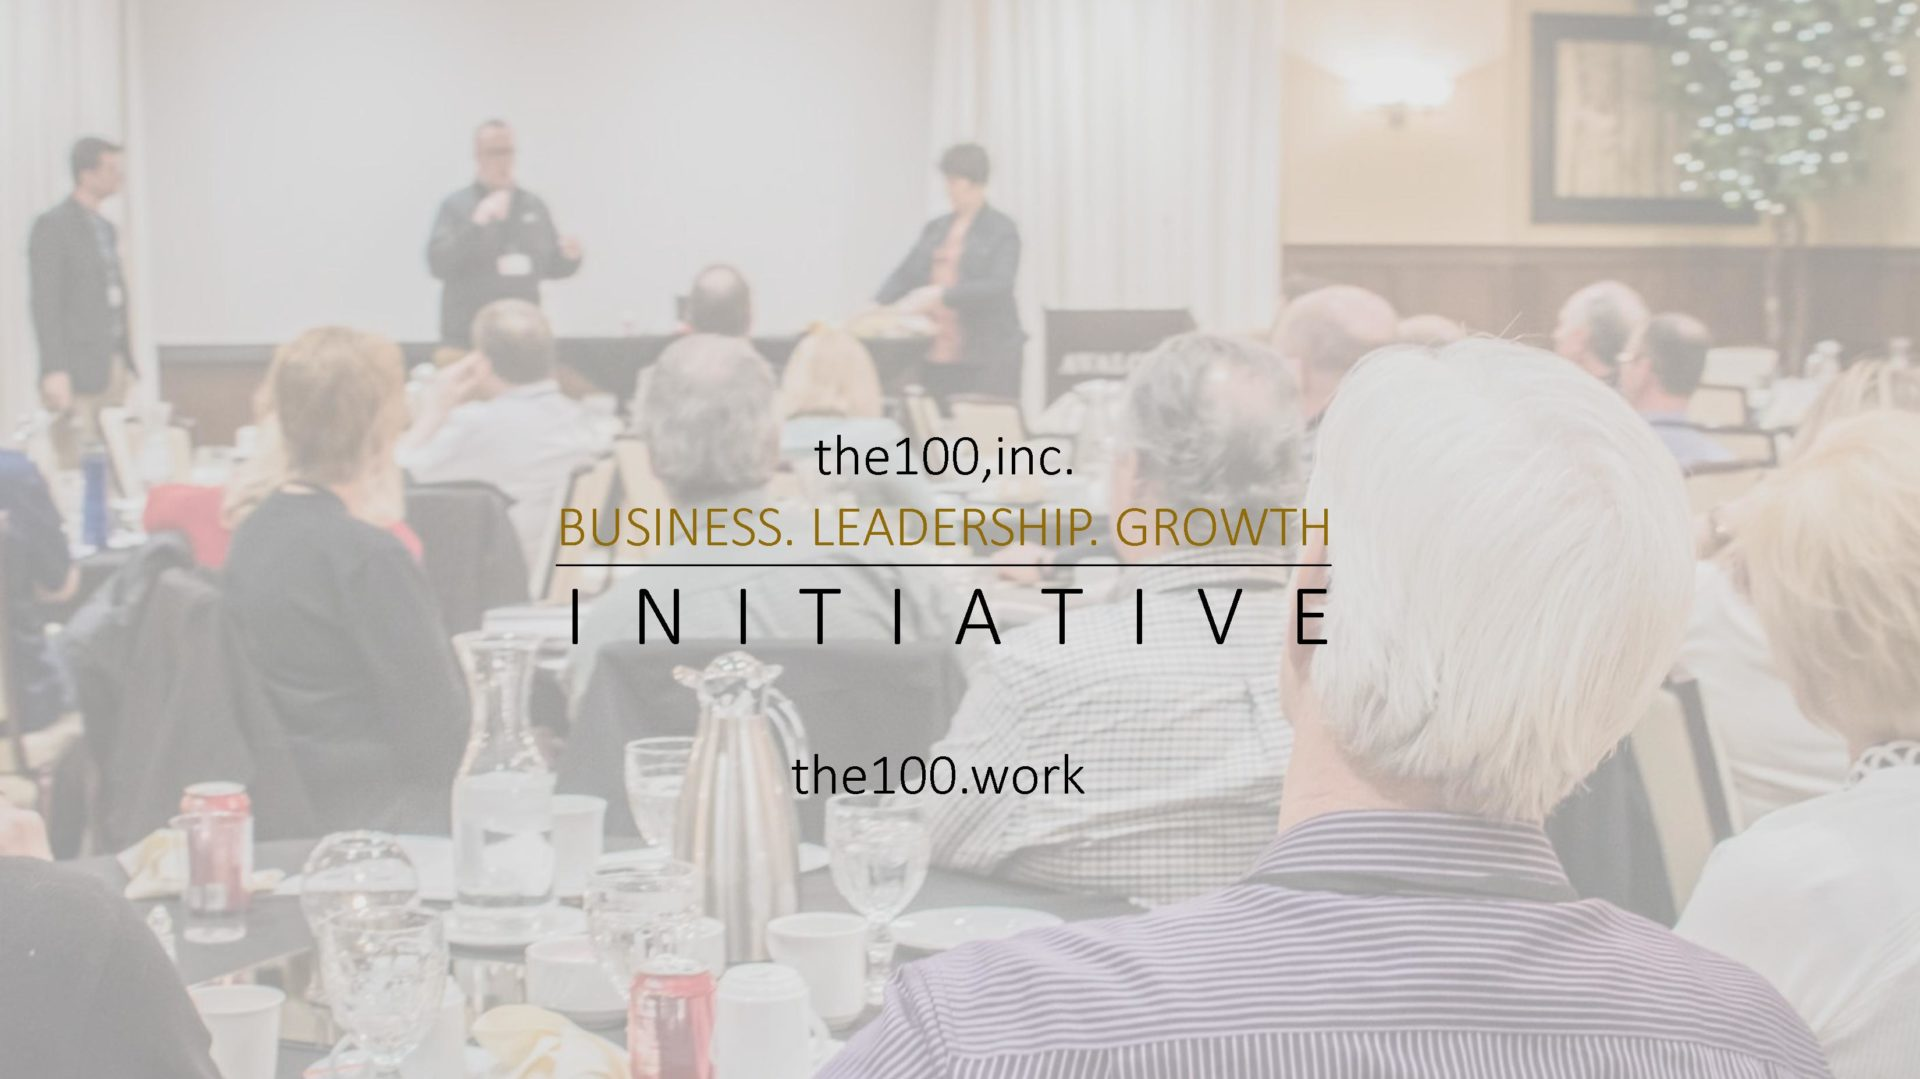 the100, inc. | Fargo, North Dakota | est. 2016